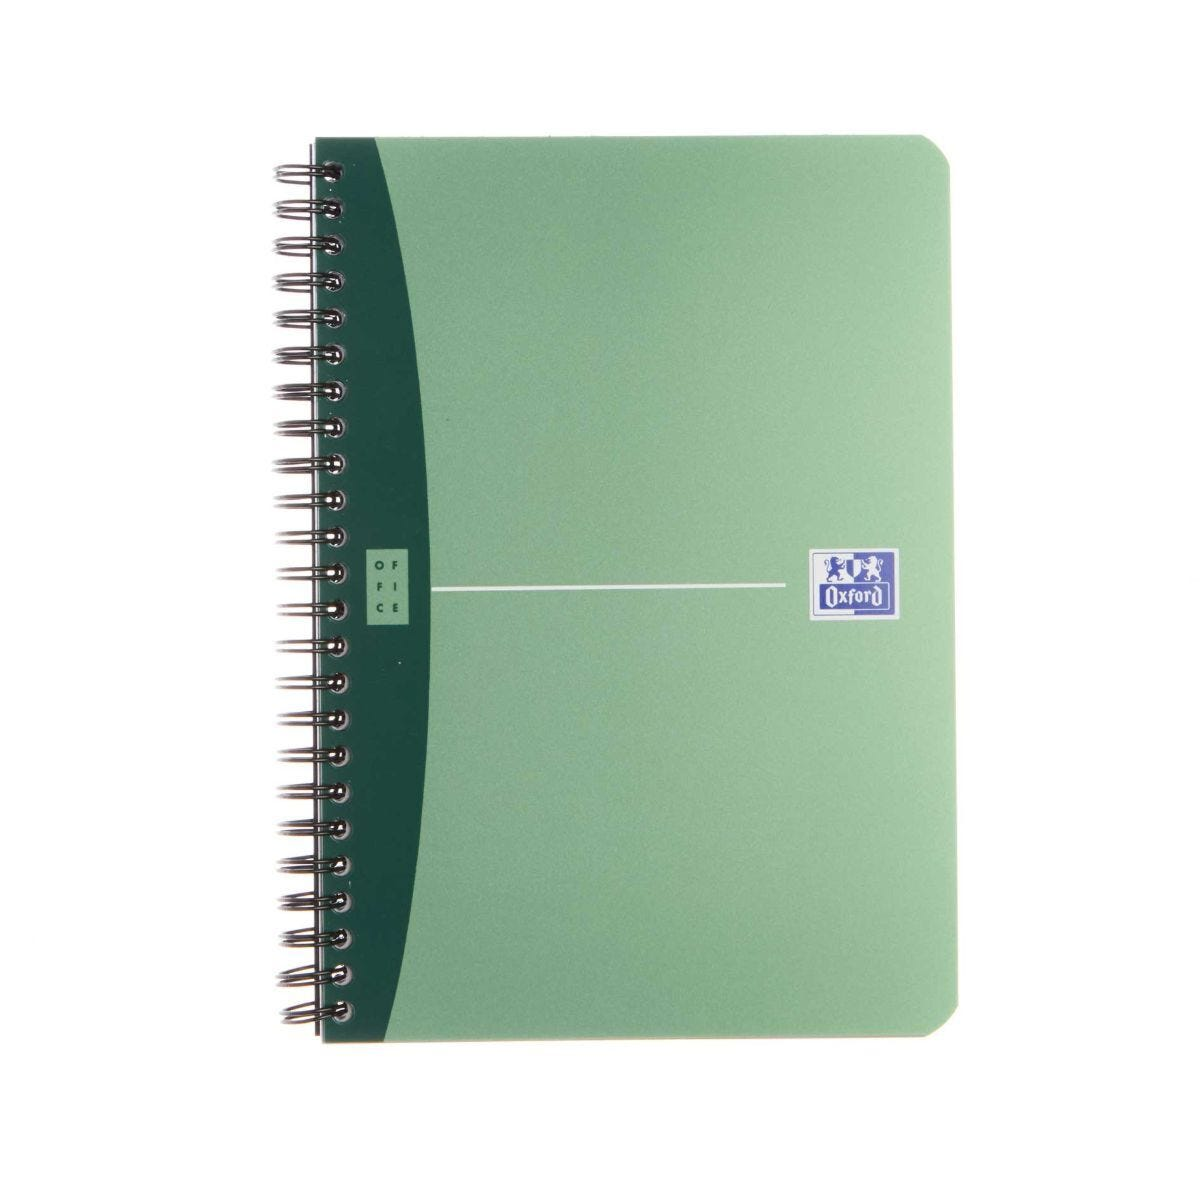 Oxford Office Pad A5 Metallic 180 Pages 90 Sheets Assorted Colours